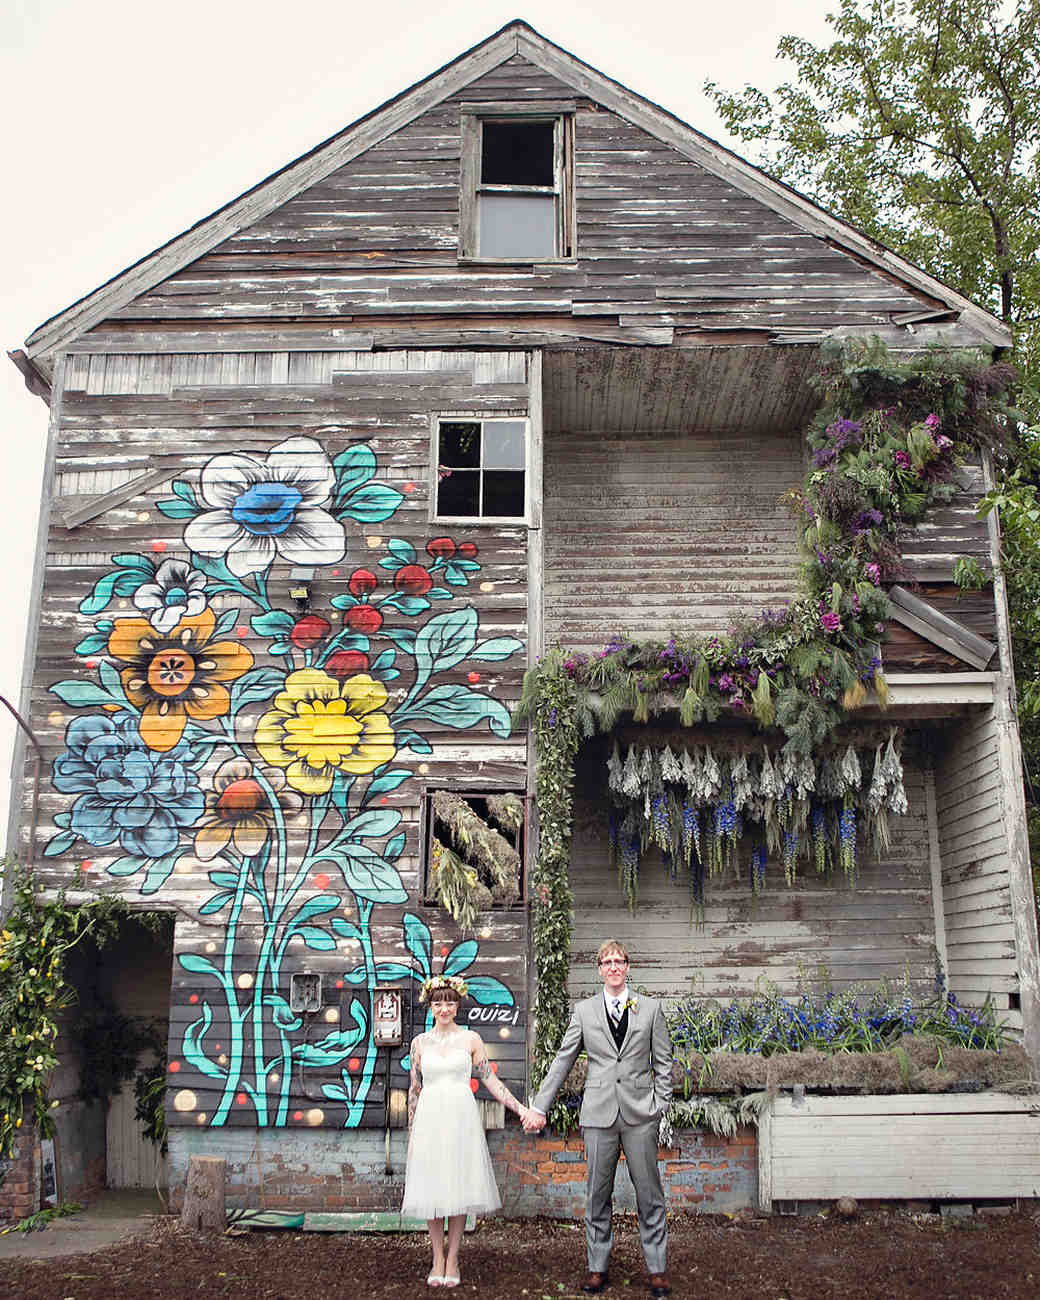 kristen-steve-flowerhouse-wedding-couple-6193-s113059-0616.jpg